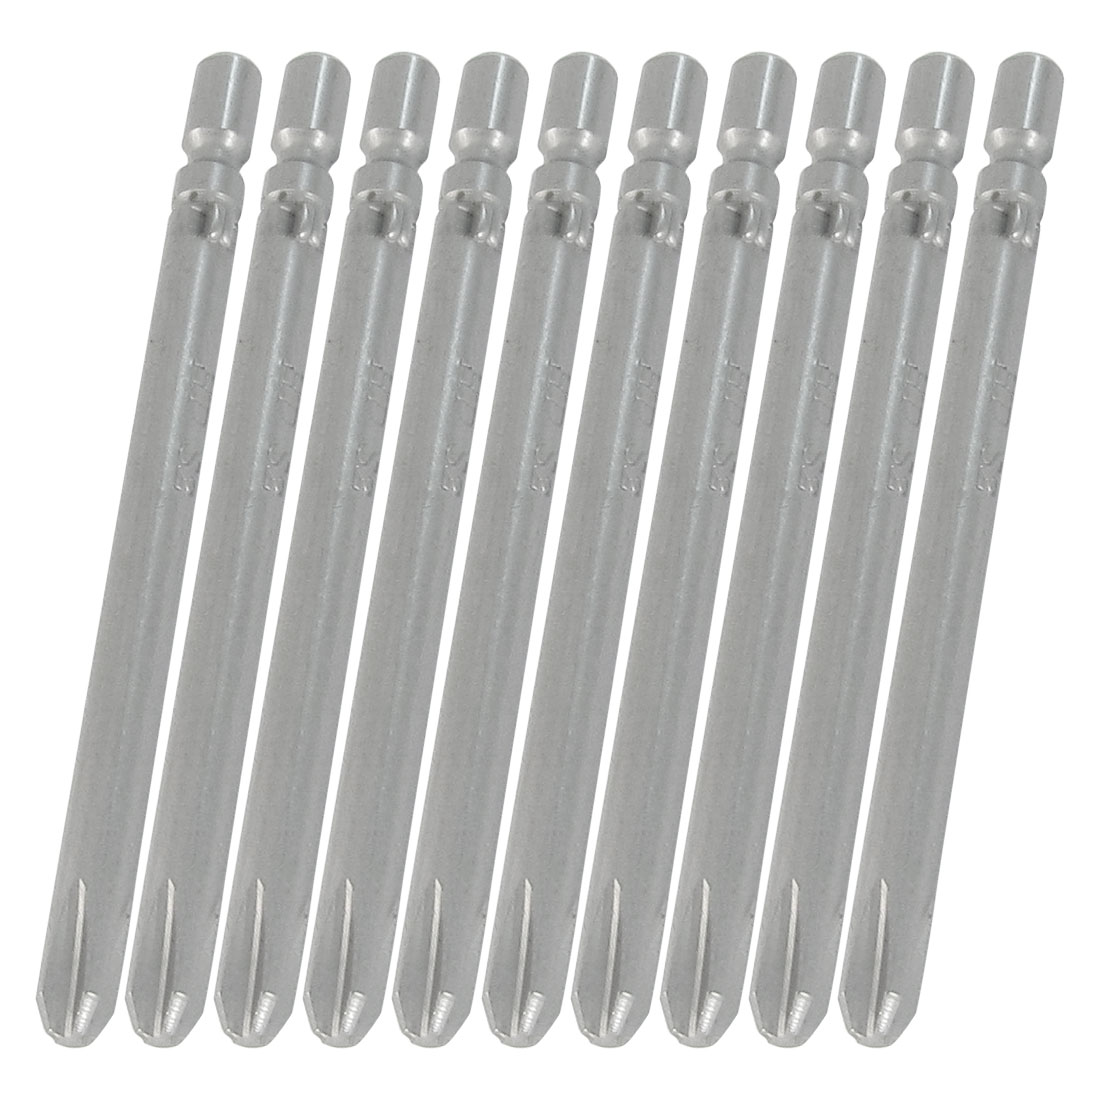 "4mm Bit Diameter 2.4"" Length Magnetic Cross Head Screwdriver Bits 10 Pcs"